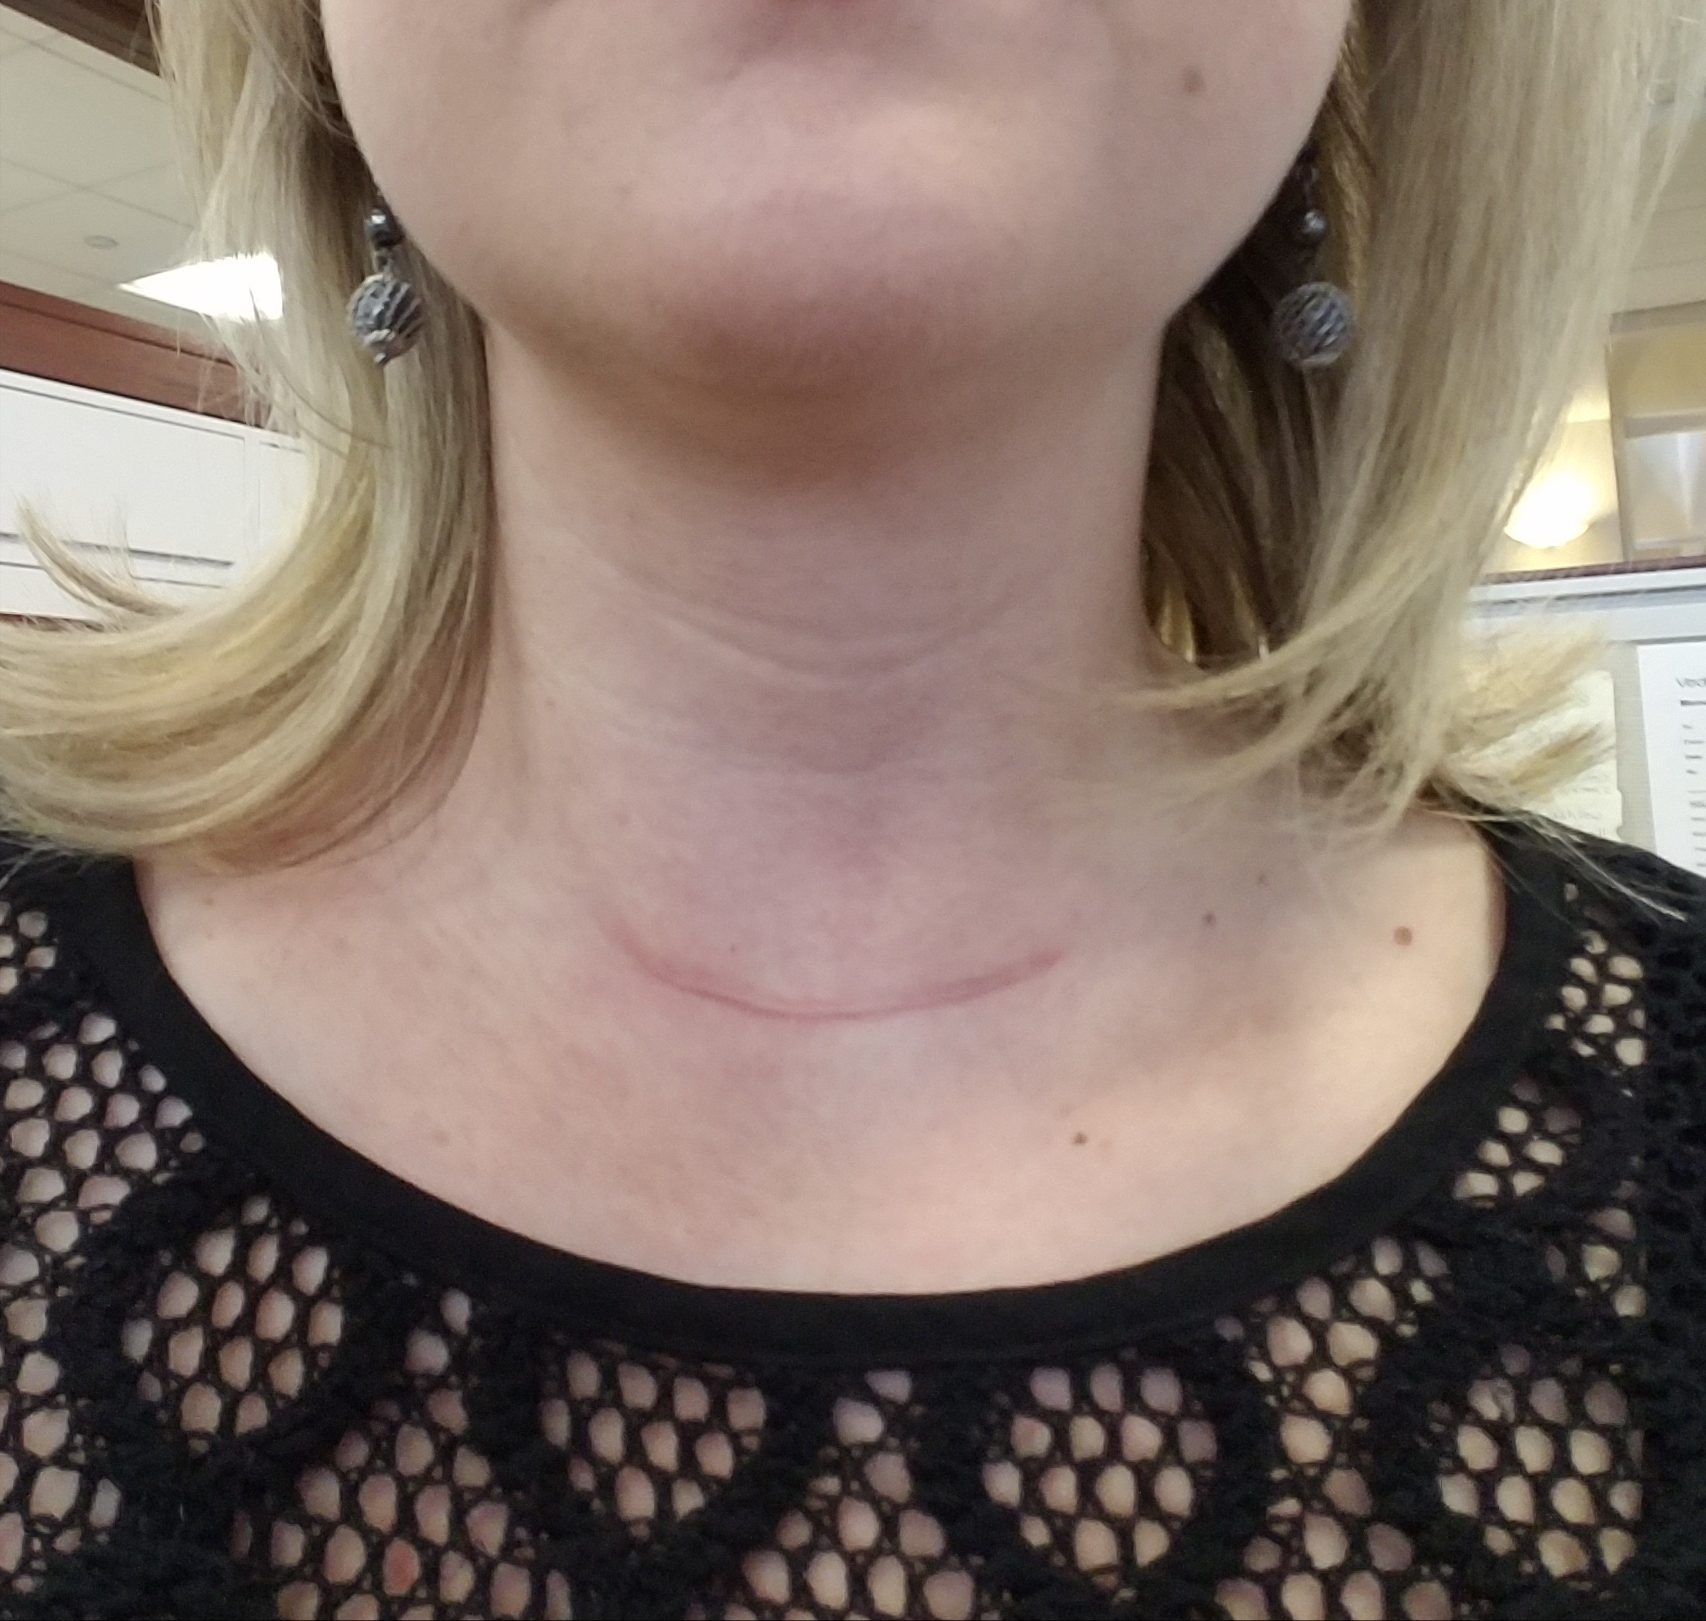 Dating someone with anxiety issues after thyroidectomy